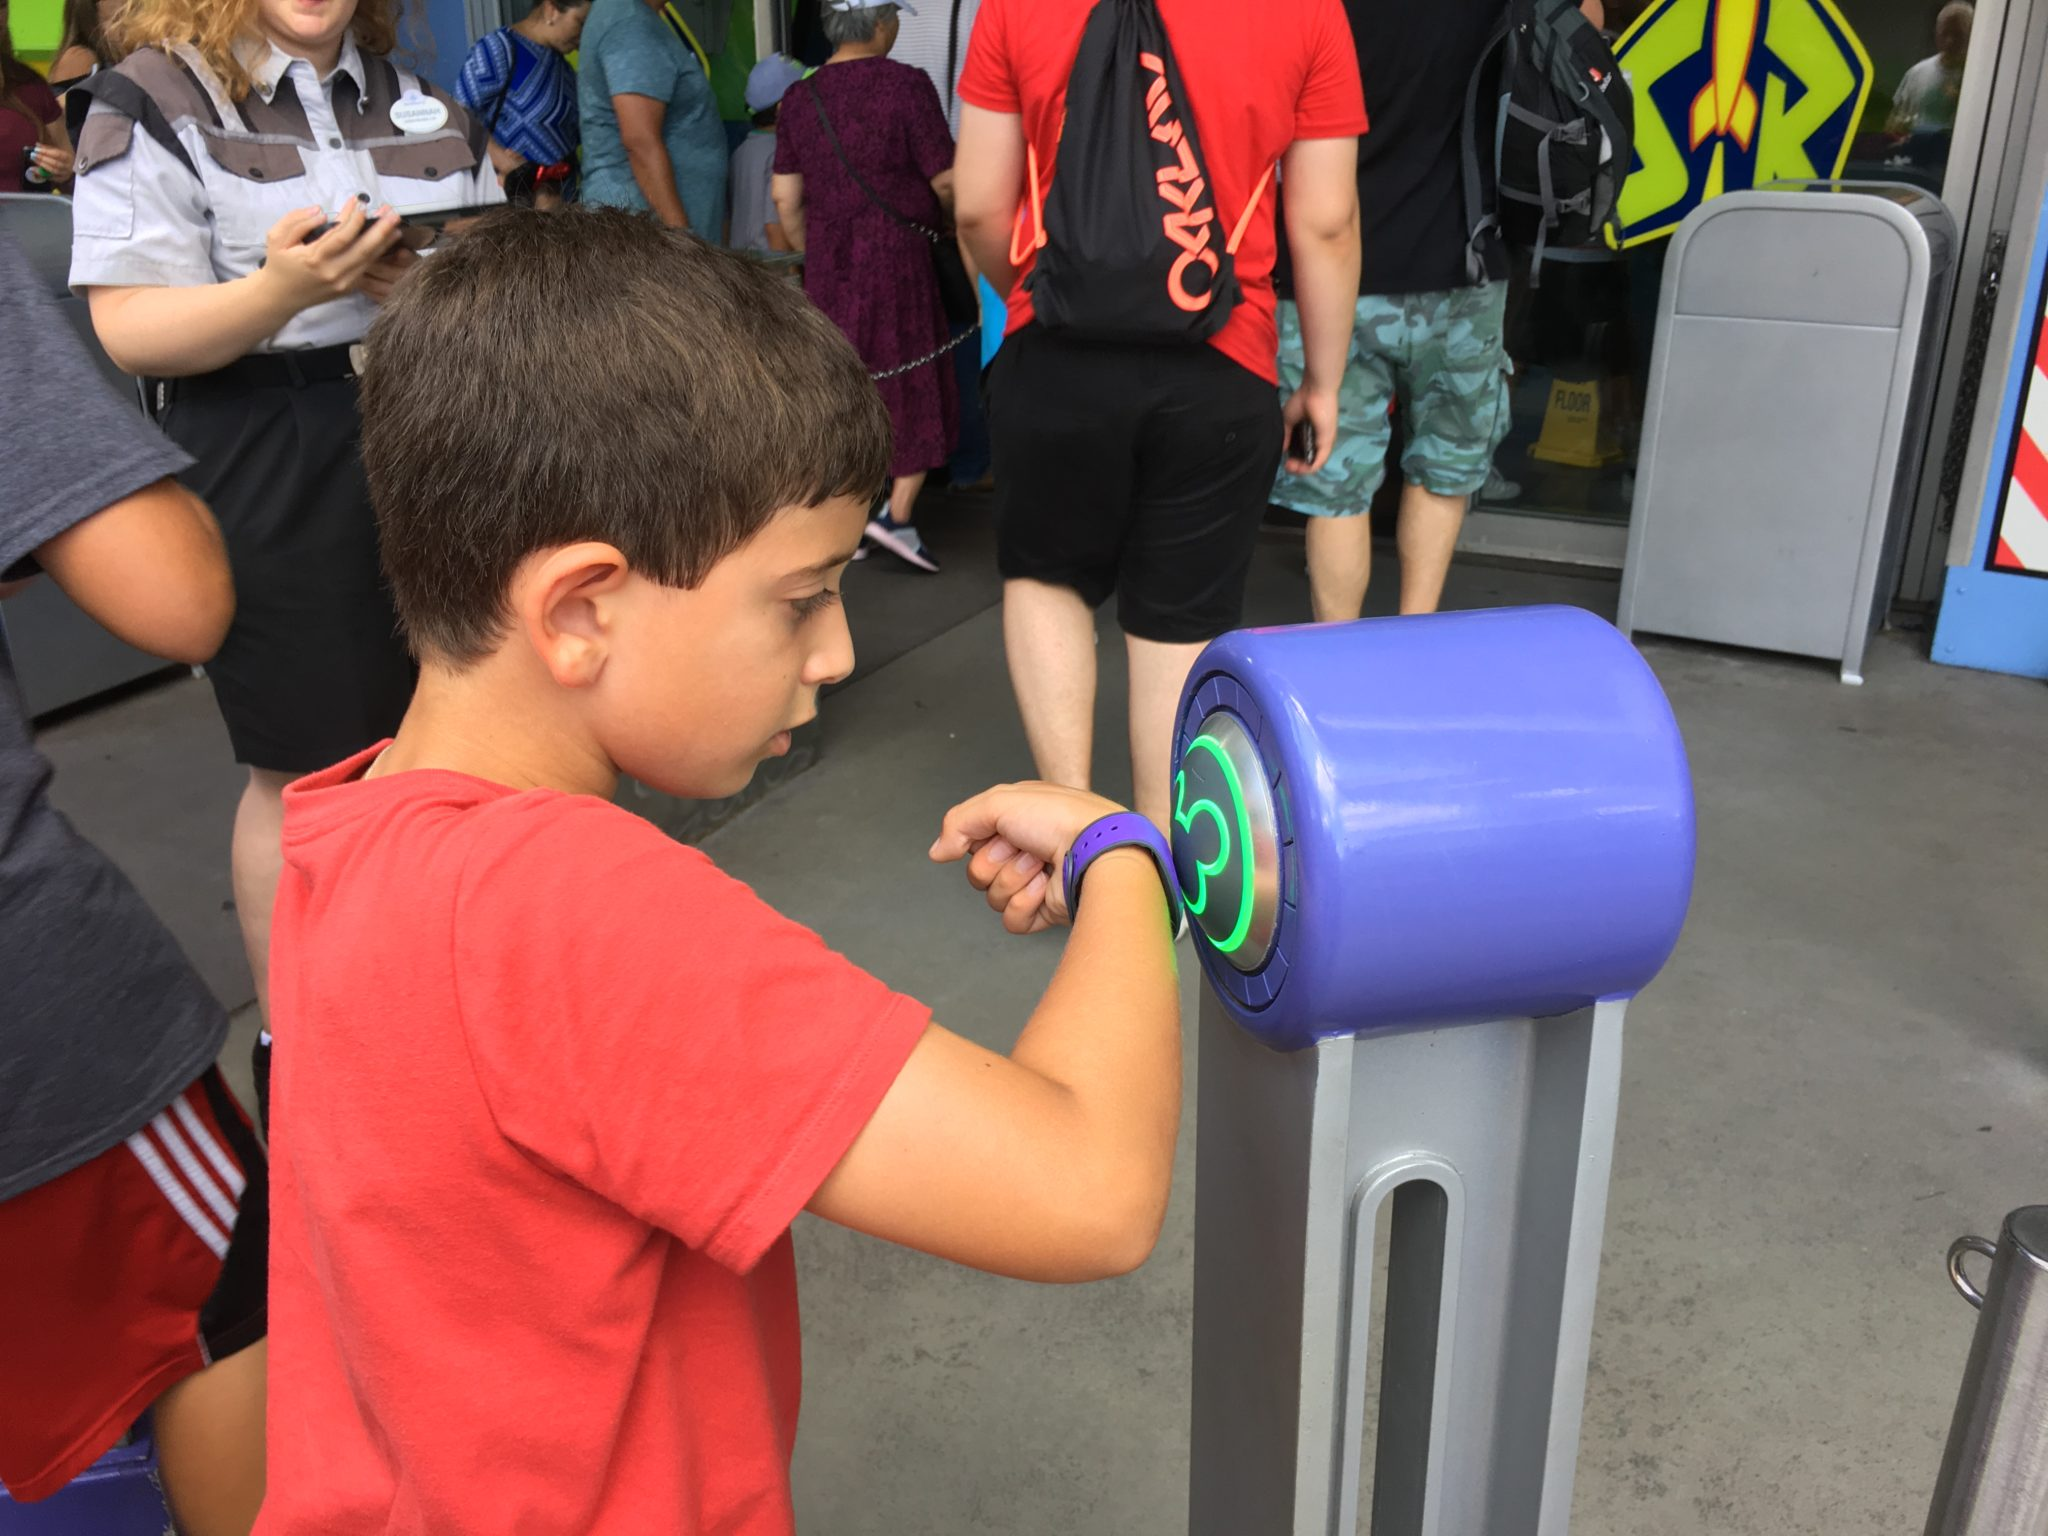 Here are tips to using Disney's Fastpass+. The Fastpass+ helps cut your wait time for attractions so you can make the most of your day at the parks.